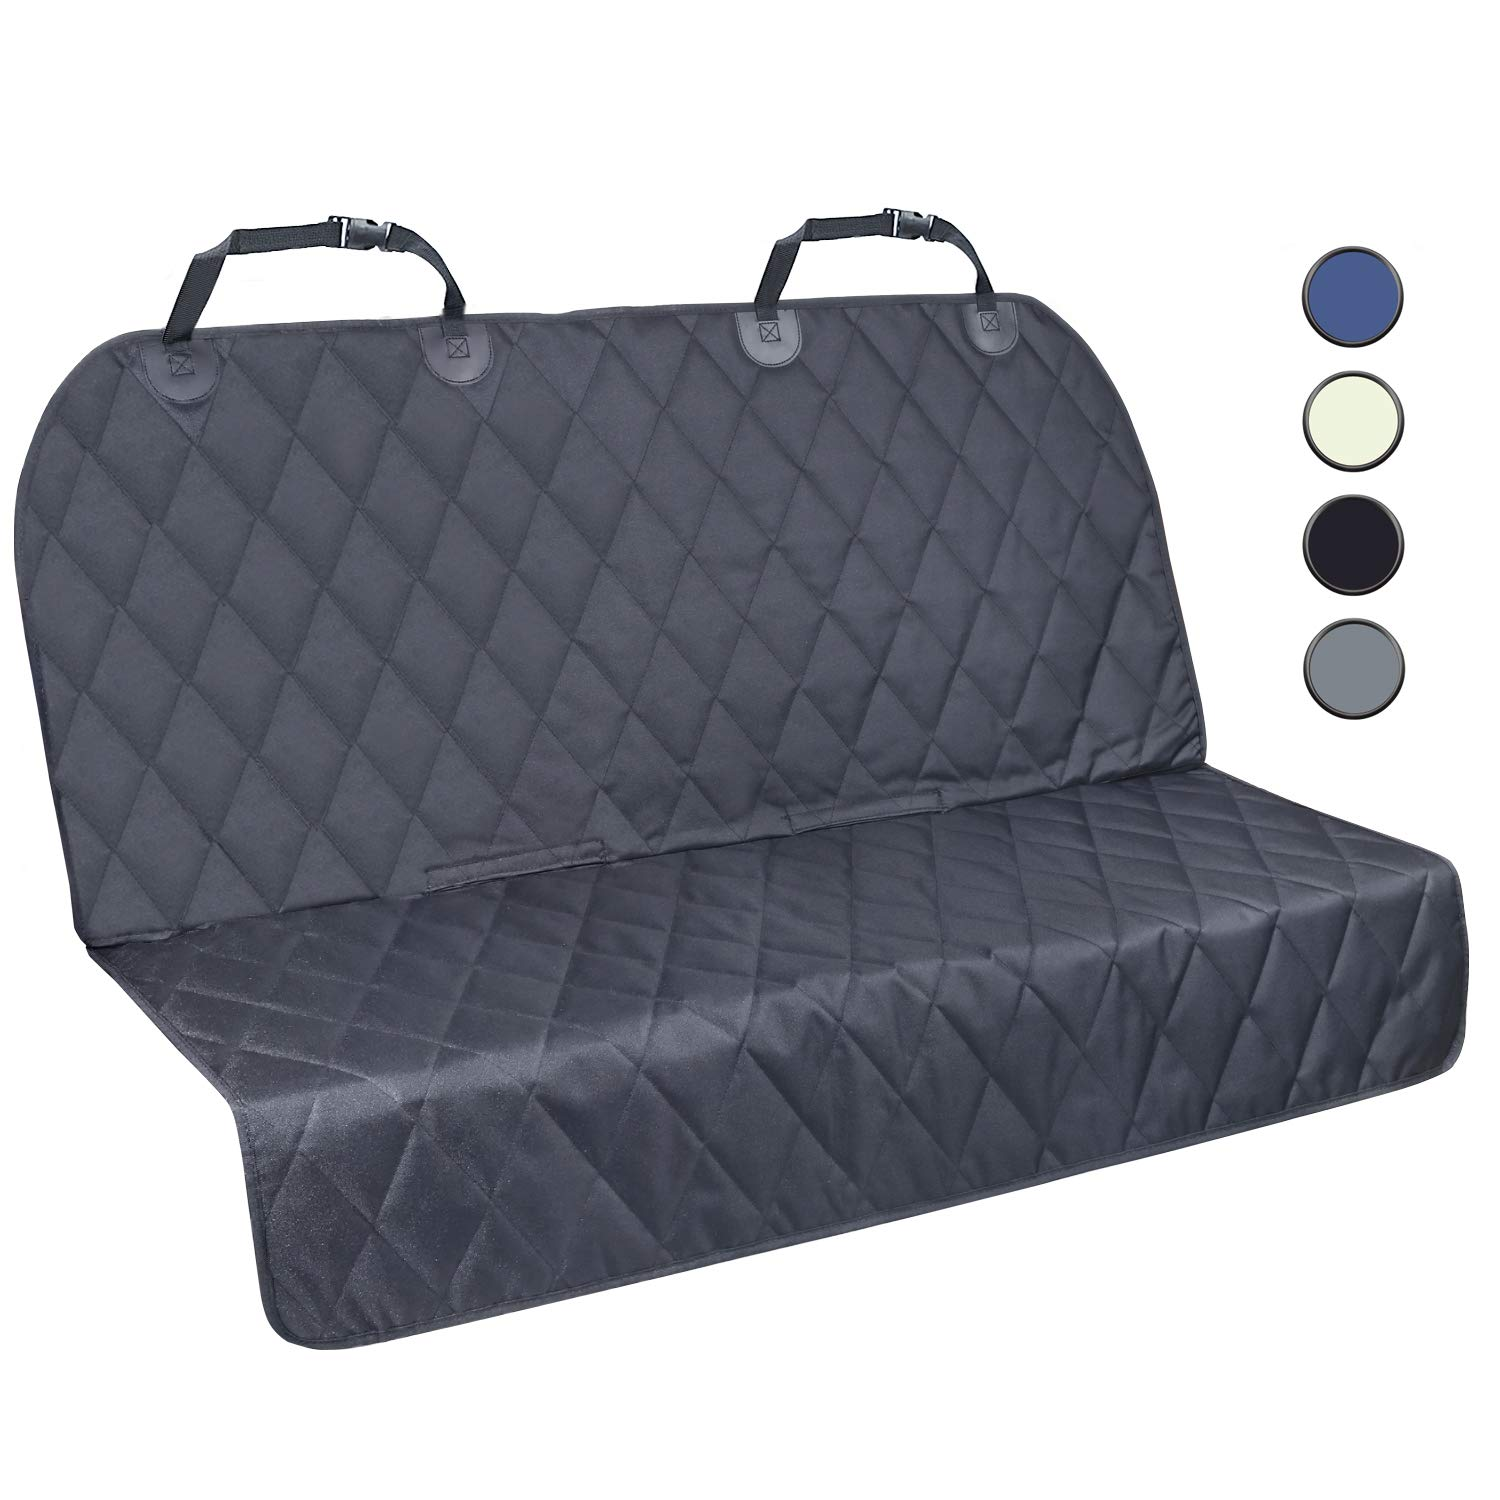 Vivaglory Dog Car Seat Covers with No-Skirt Design, Quilted Durable 600 Denier Oxford 4 Layers Pet Car Protectors with Anti-Slip Backing for Most Cars, SUVs MPVs, Bucket Bench Available